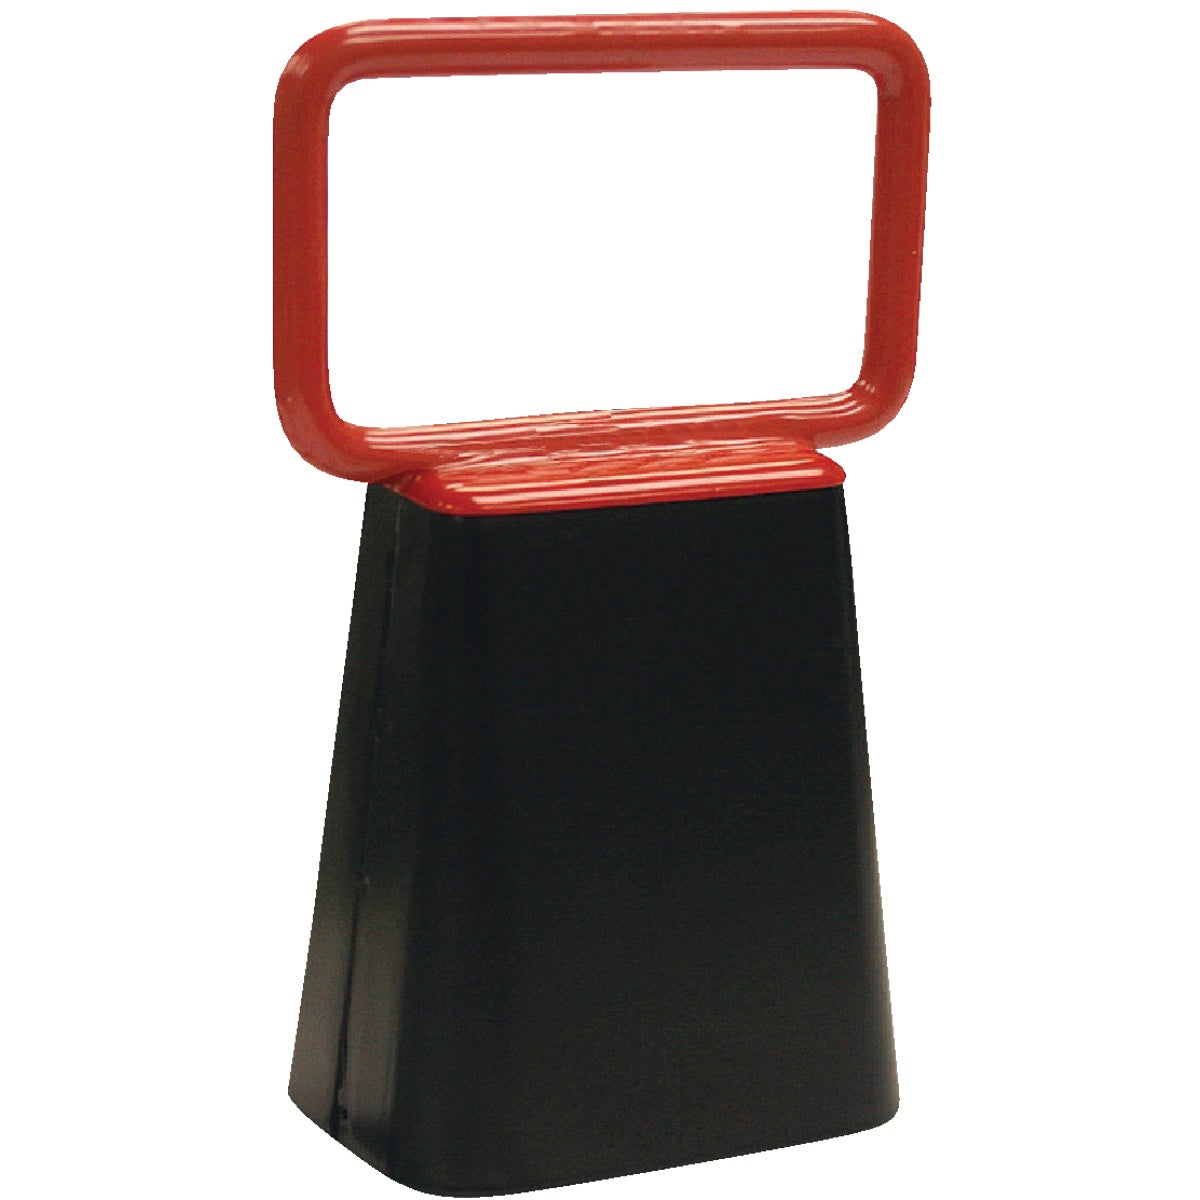 SPORTS COWBELL - S90072300-CB900723 by Speeco Farmex